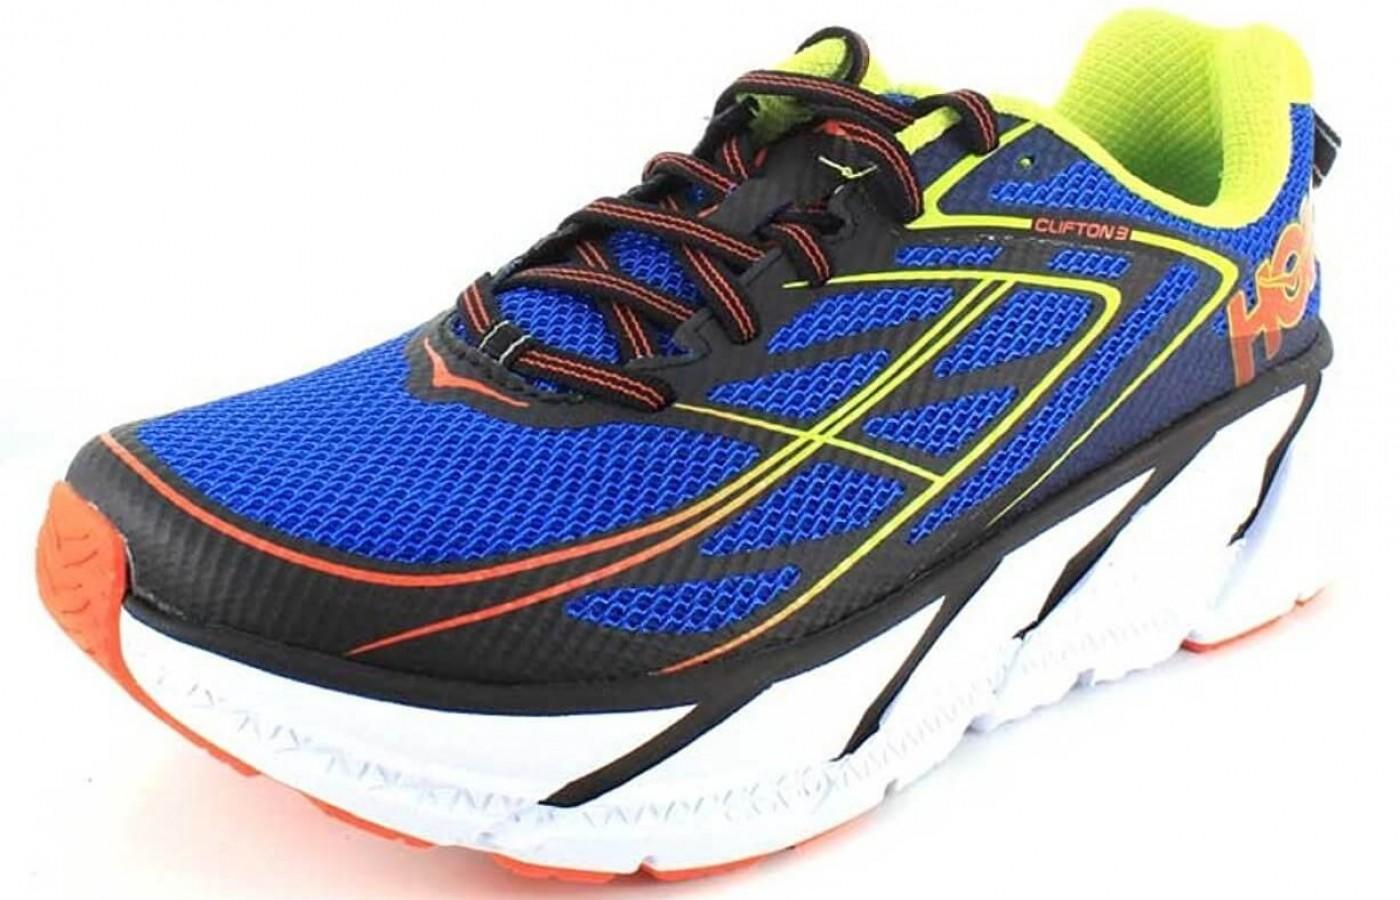 Hoka One One Clifton 3 1